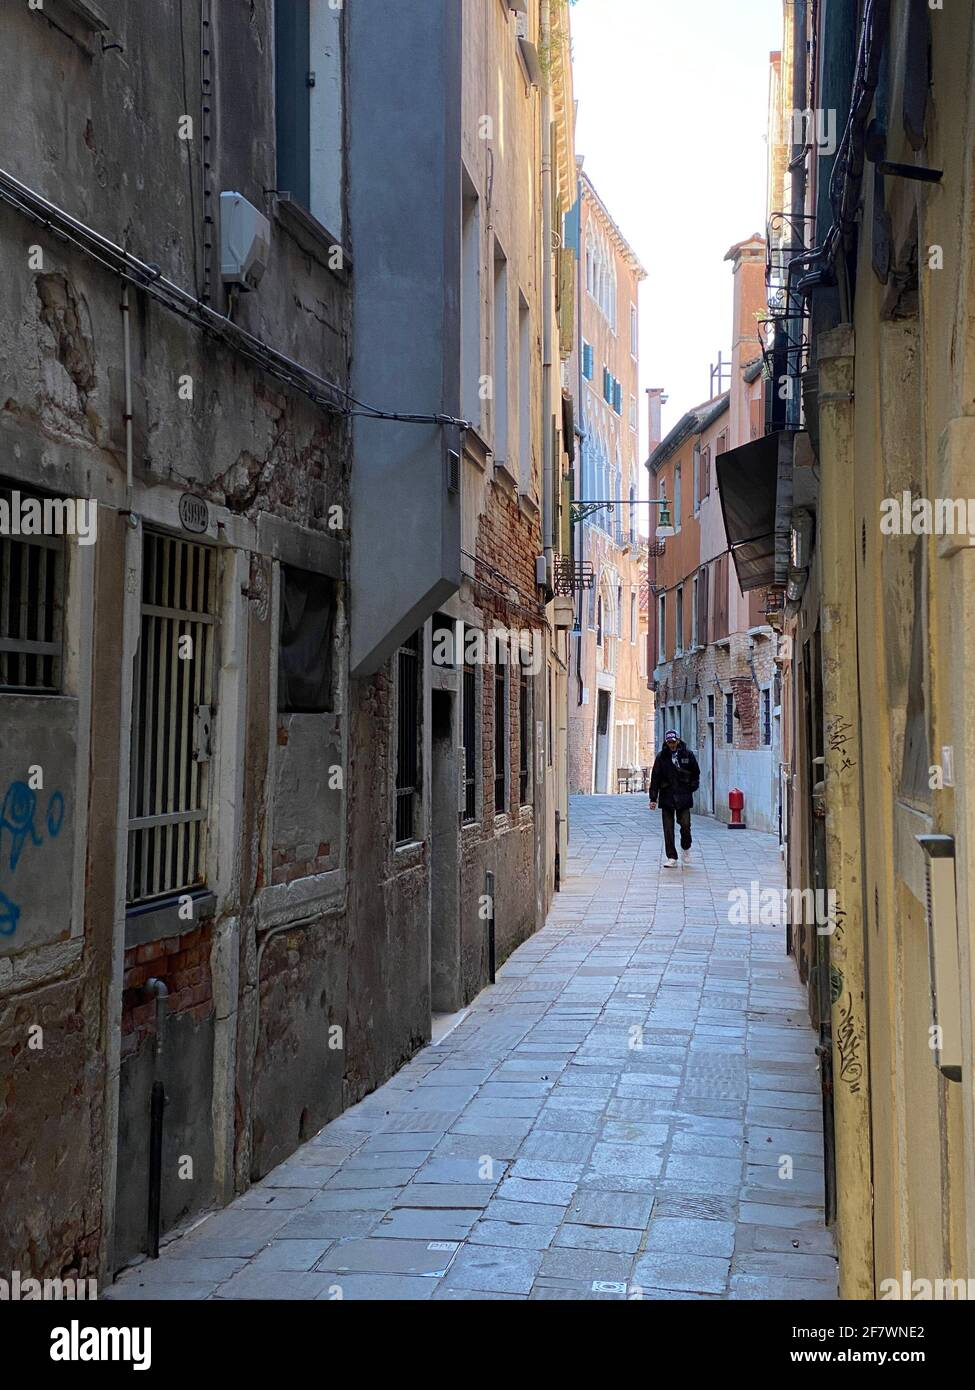 Small street in Venice without any people during crisis COVID-19, Italy Stock Photo